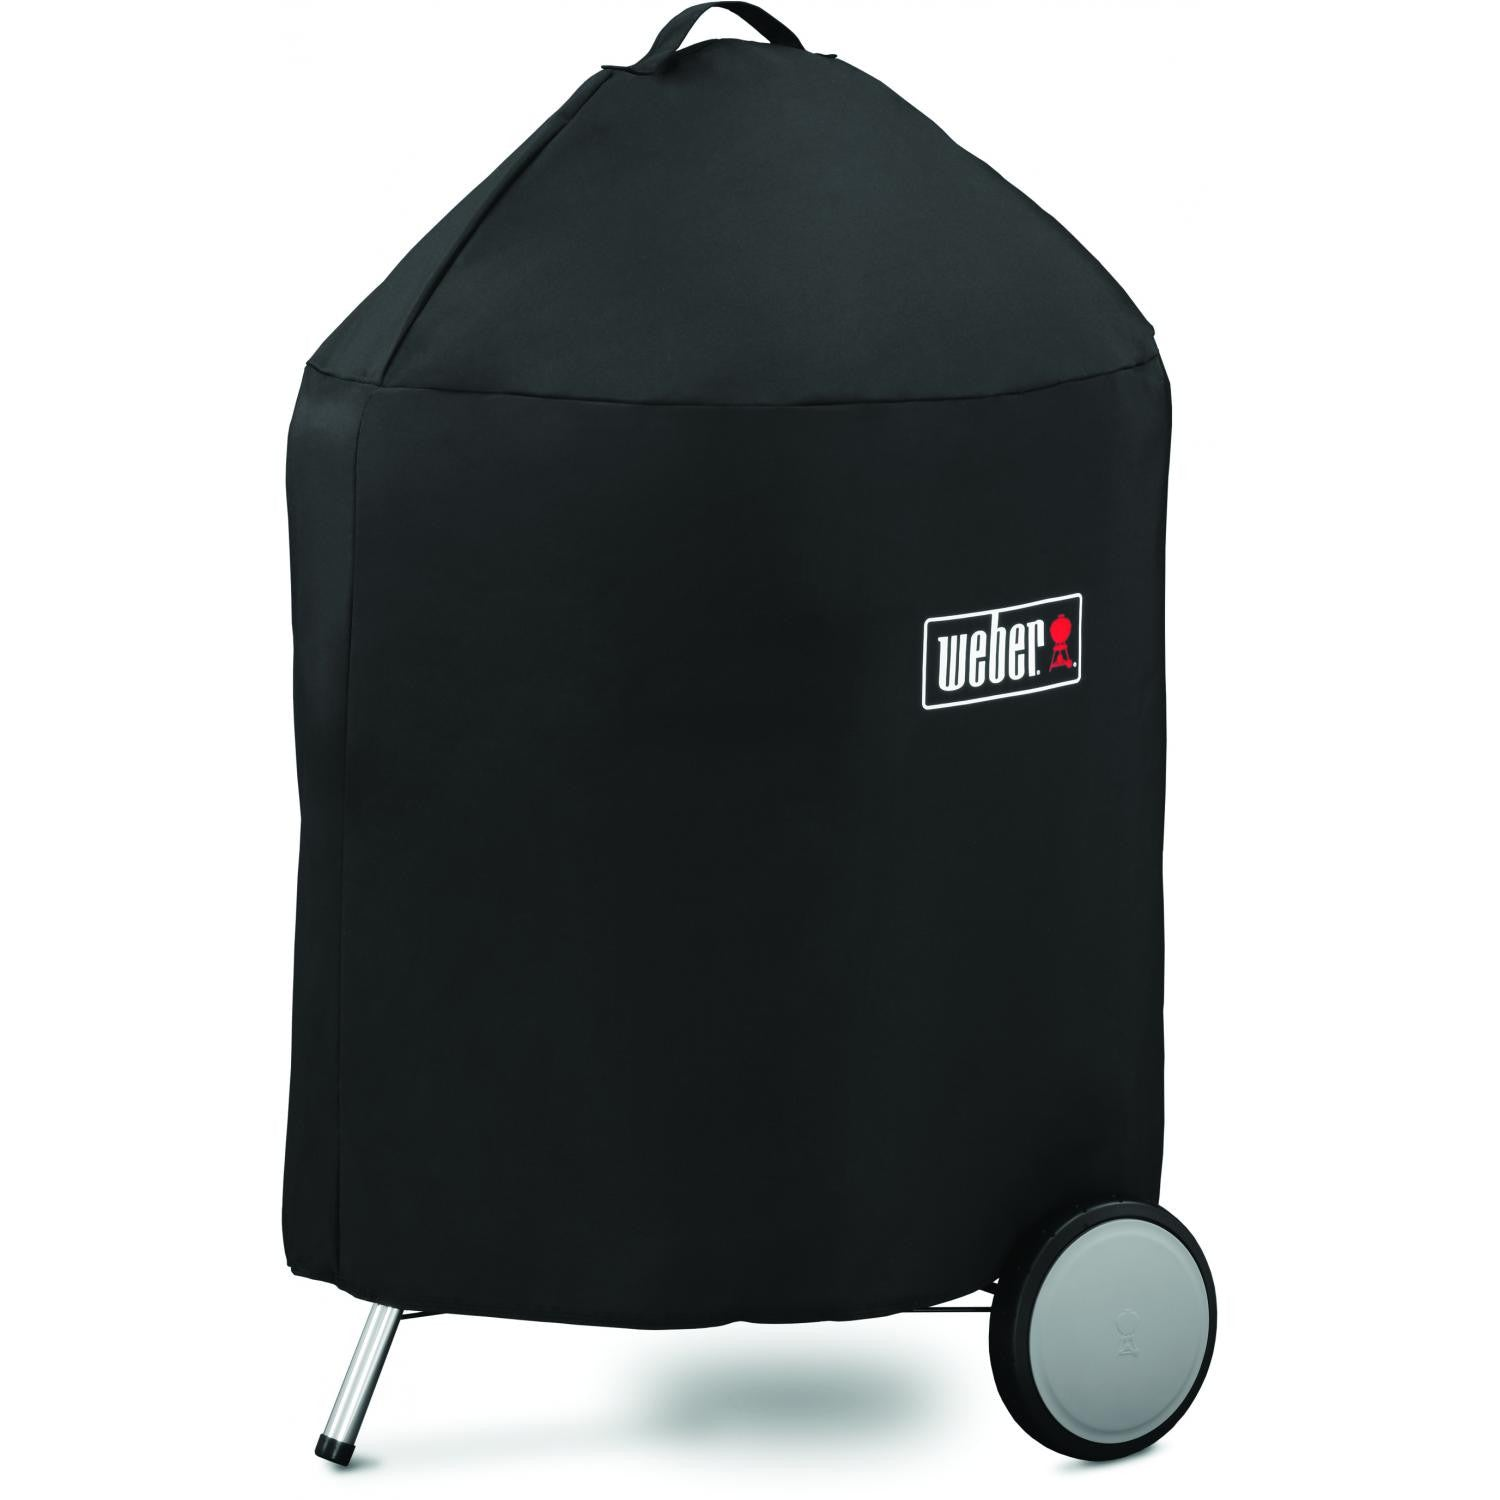 Weber 7150 Premium Grill Cover For Master Touch Charcoal Grills